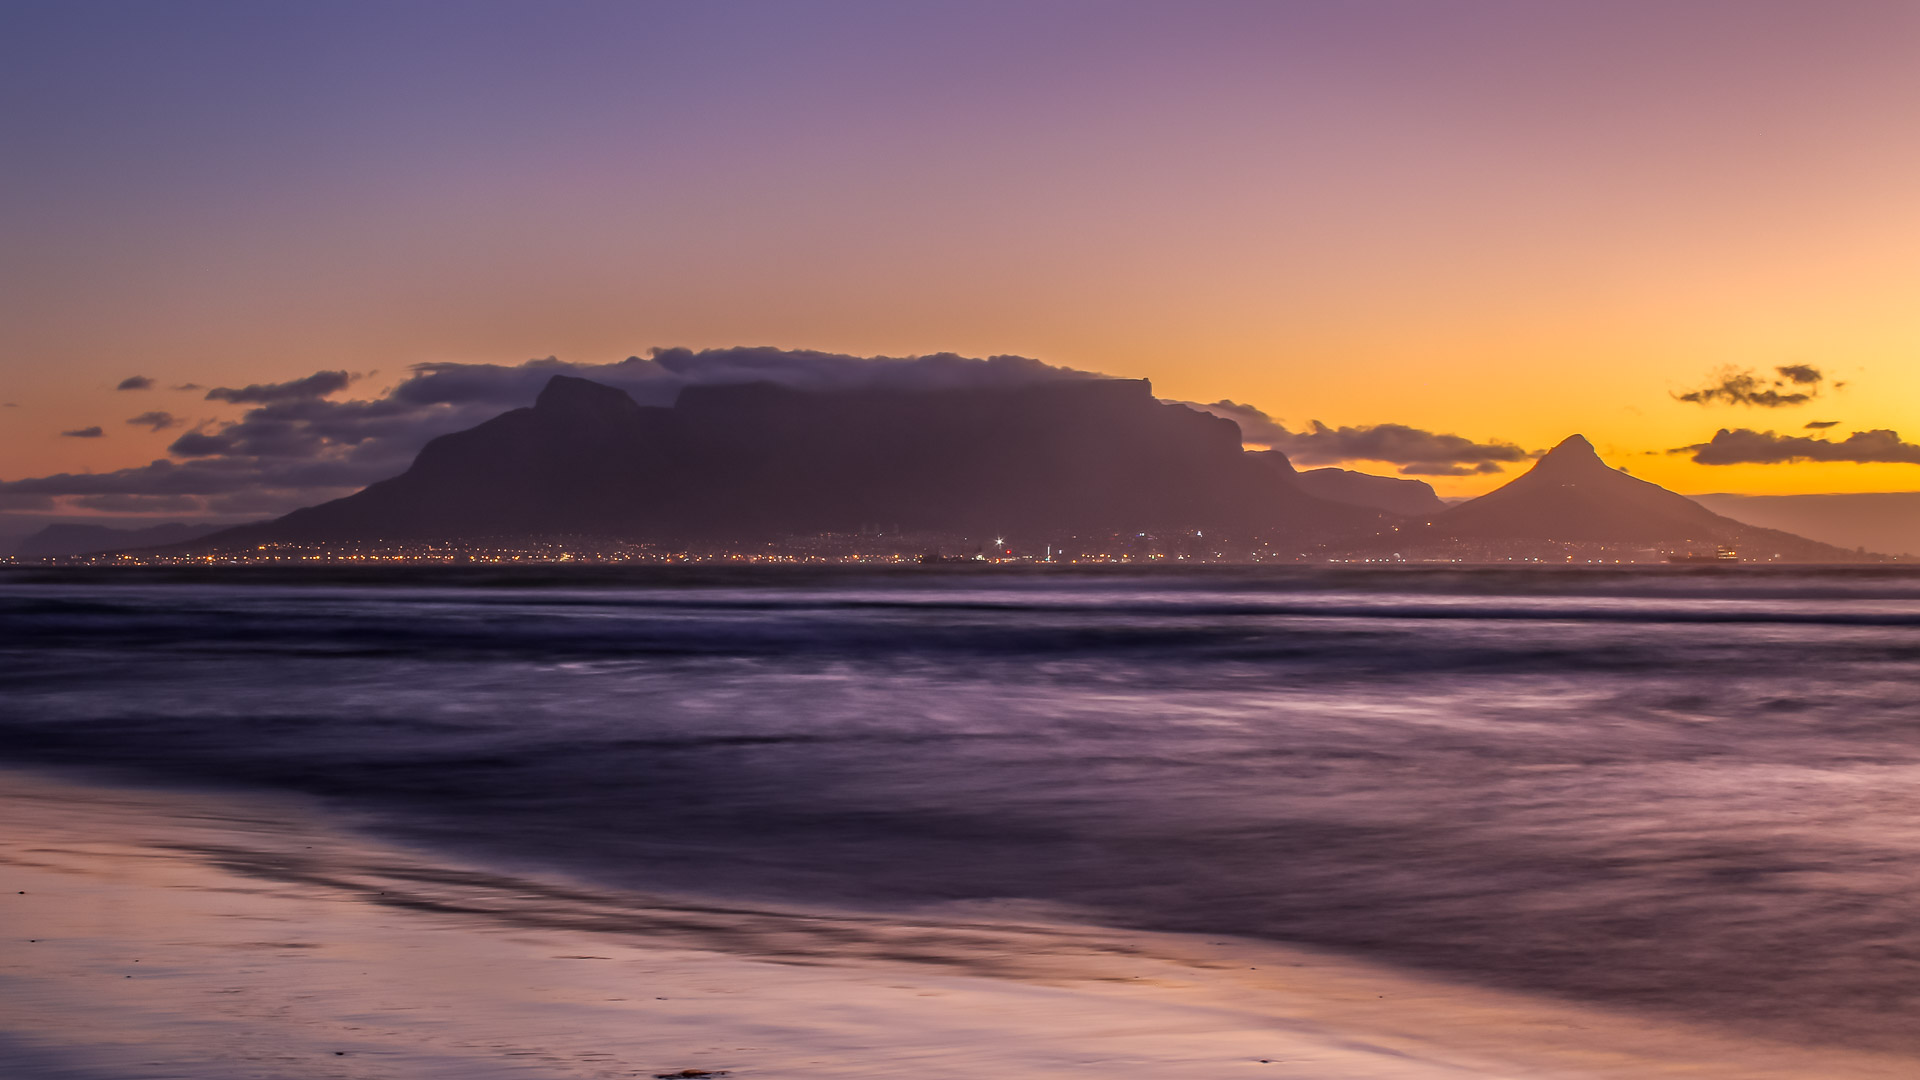 Golden hour sunset over table mountain in Cape Town, South Africa